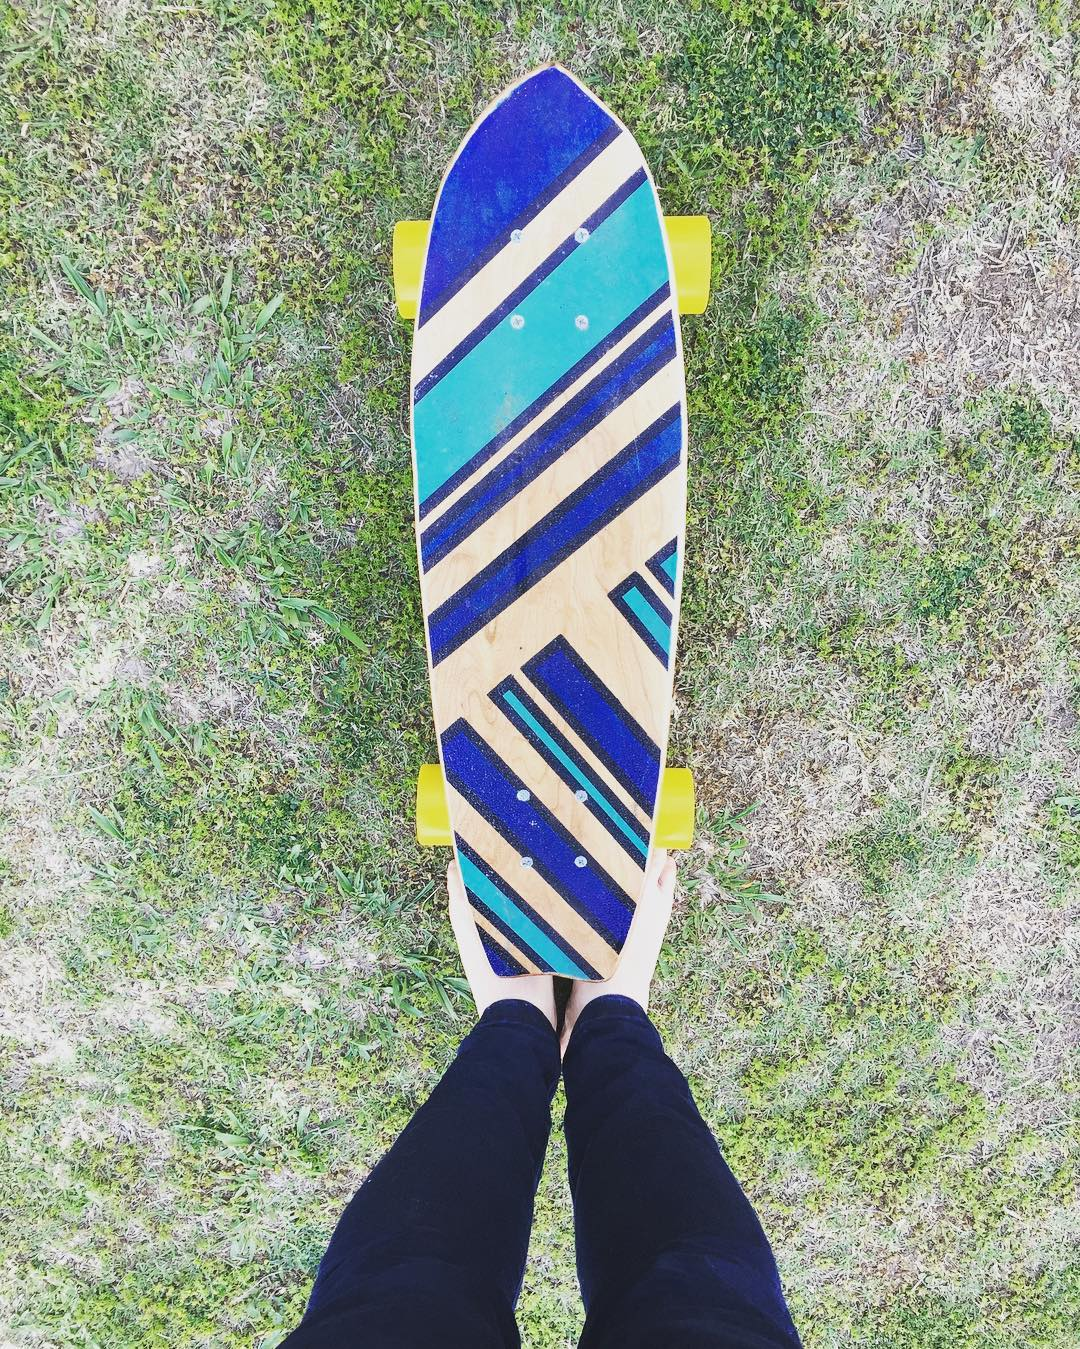 Vamos JUNTOS! // Let' s Go together! #deslizate -----> www.deslizate.org . . . . . #deslizate #skateboard #board #surfboard #handmade #socialinnovation #outdoor #together #adventure #ecosalvaged #patagonia #handpainted